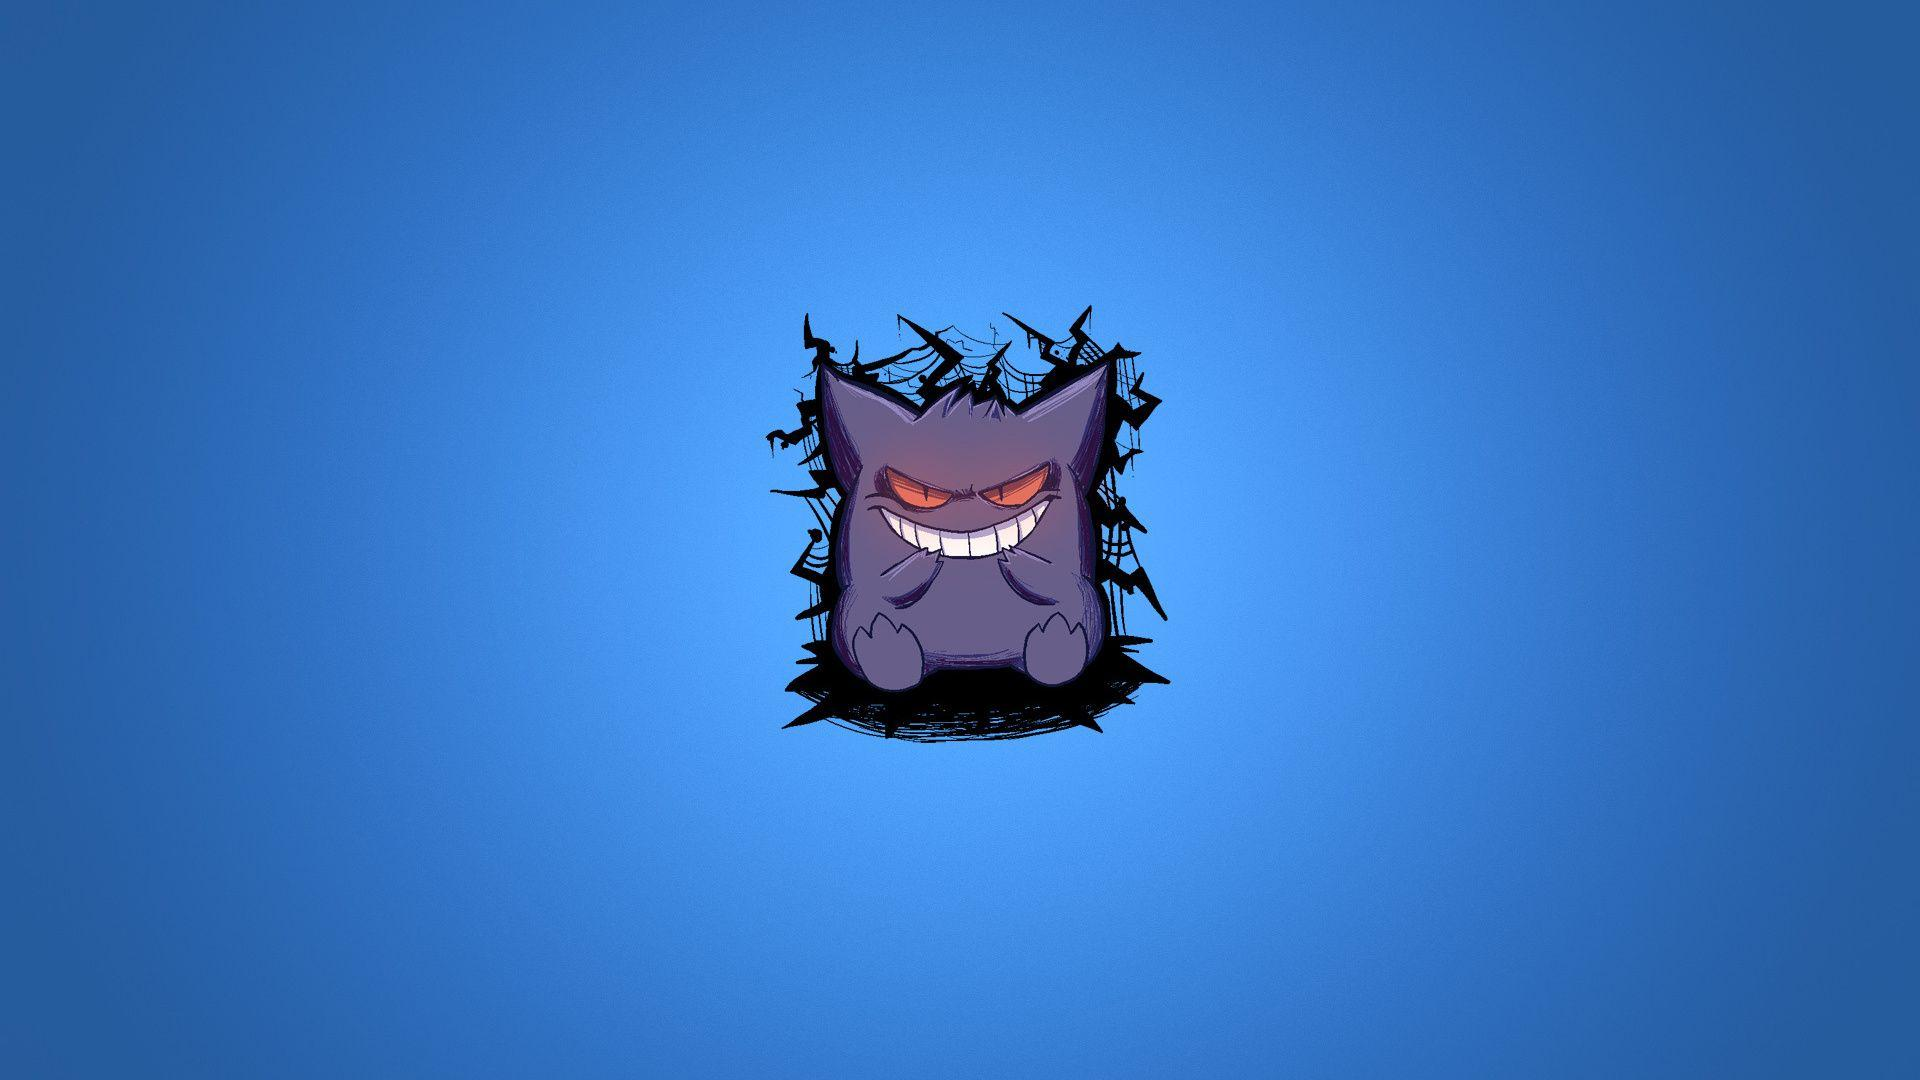 1920x1080 Blue Background, Pokemon, Smile, Purple, Pokemon, Gengar ...